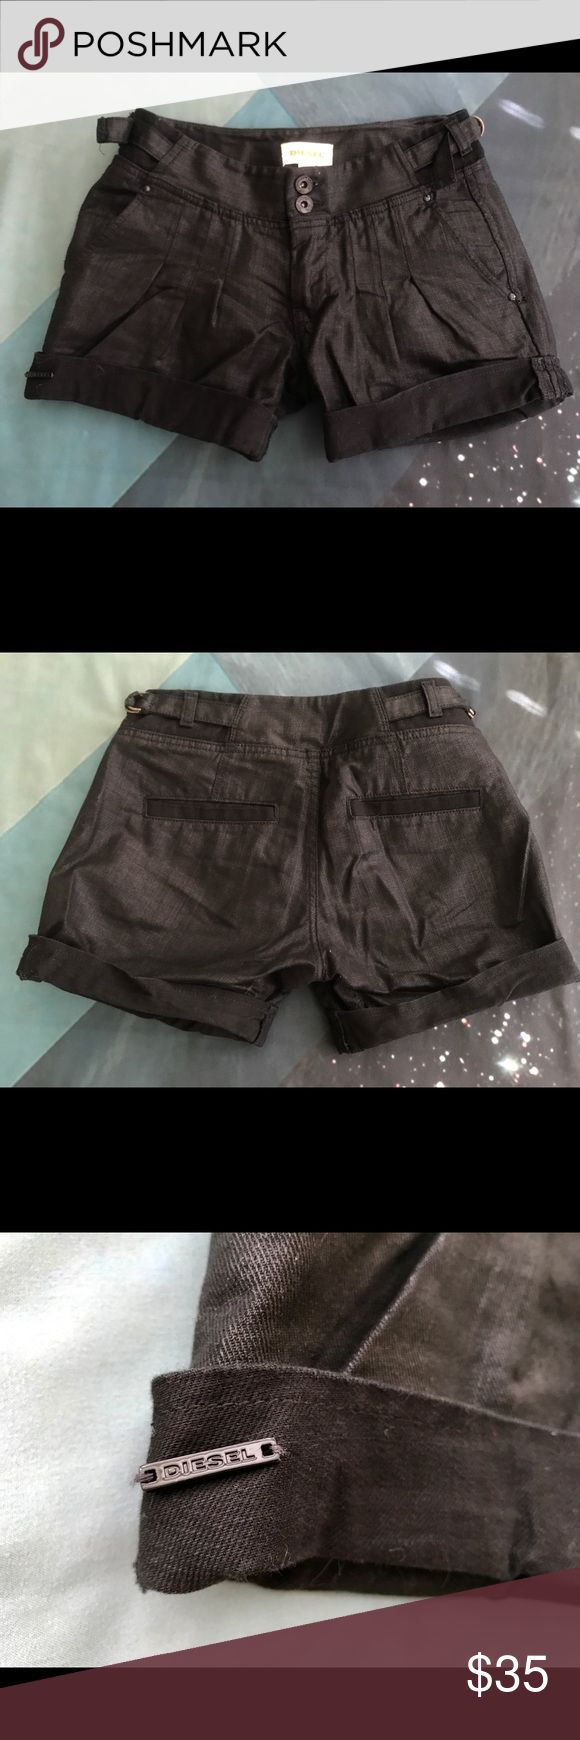 DIESEL shorts Brushed black denim shorts.  Cuffs and pleating on front, with double button fly and double loops and ties on each hip.  These are so cute with literally anything,  I would usually wear a collared button down blouse, throw my hair in a pony, and have a schoolboy vibes look for the day.  These are so high quality and in excellent perfect condition! Diesel Shorts